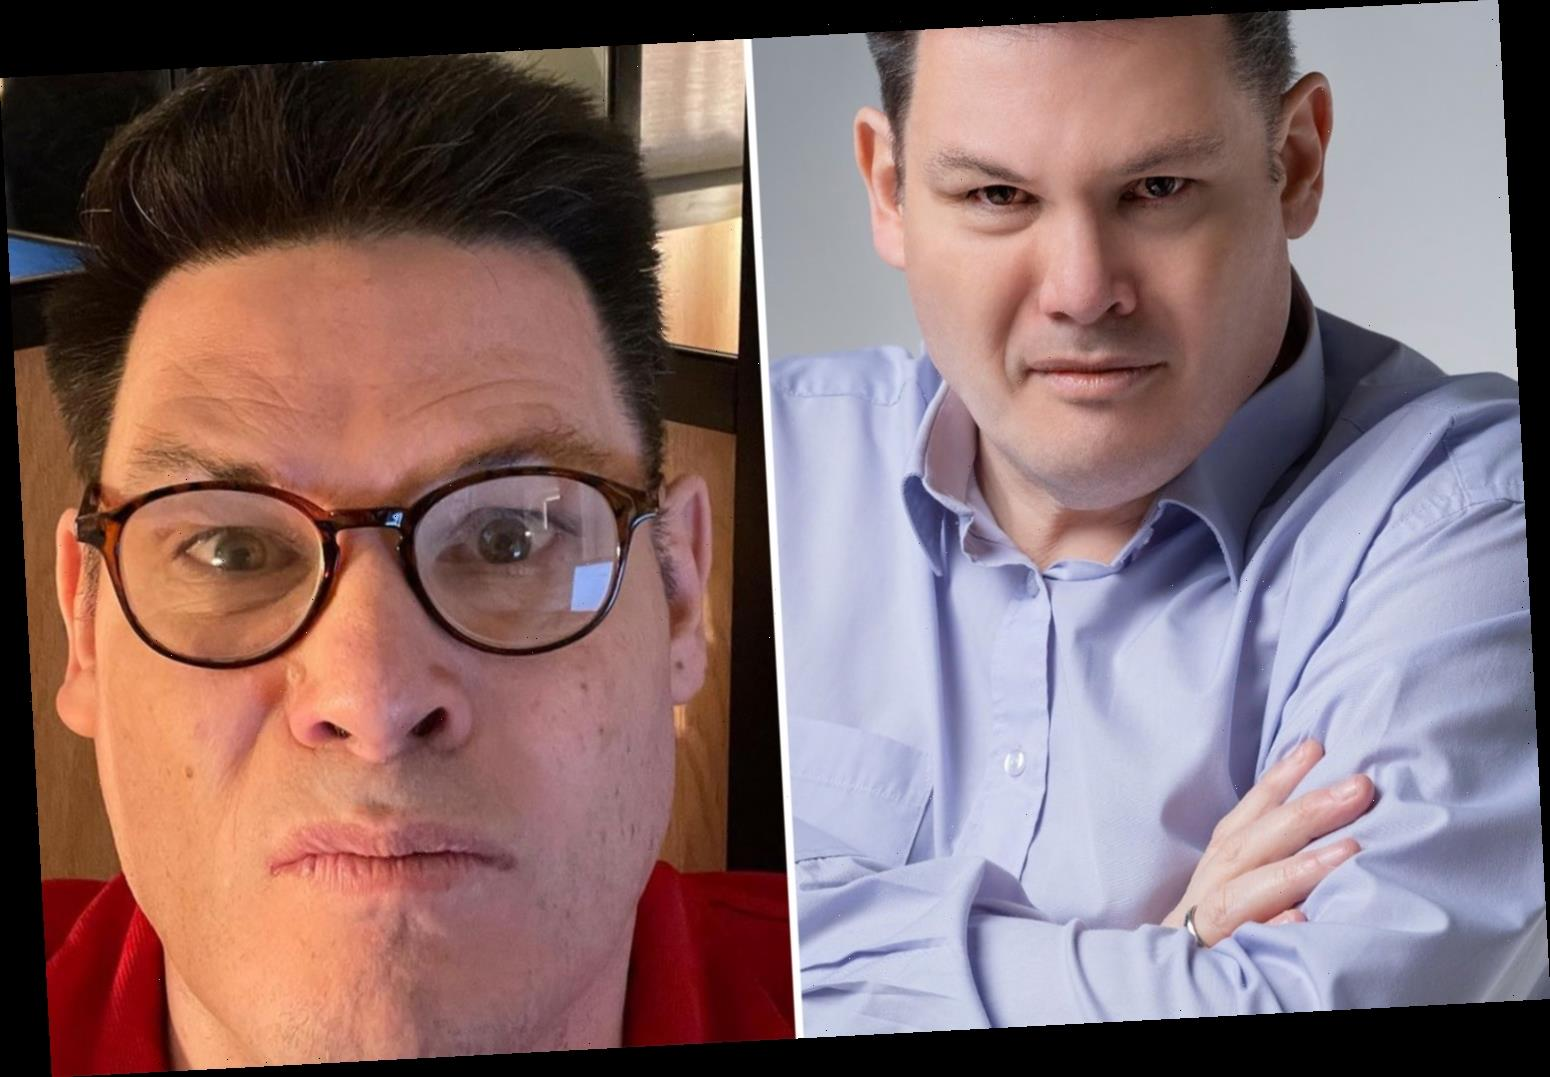 The Chase's Mark Labbett makes fans swoon with hunky new snap after dramatic weight loss